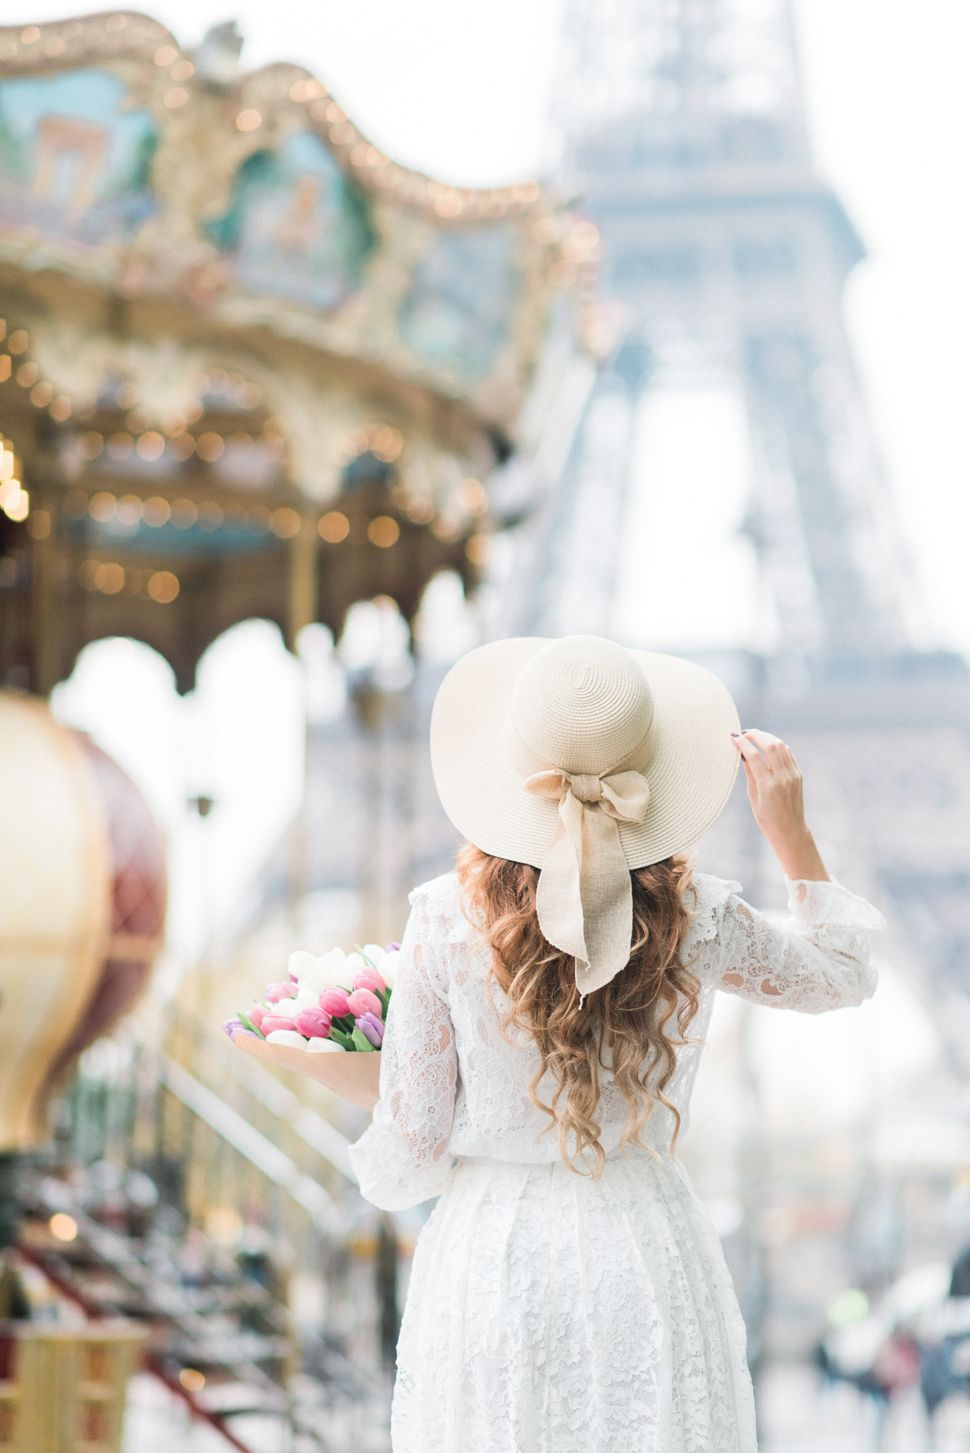 Location: Paris, Tour Eiffel. Missguided white lace midi skirt.Chicwish white lace shirt. Summer straw hat. Nike sneakers. All white OOTD.